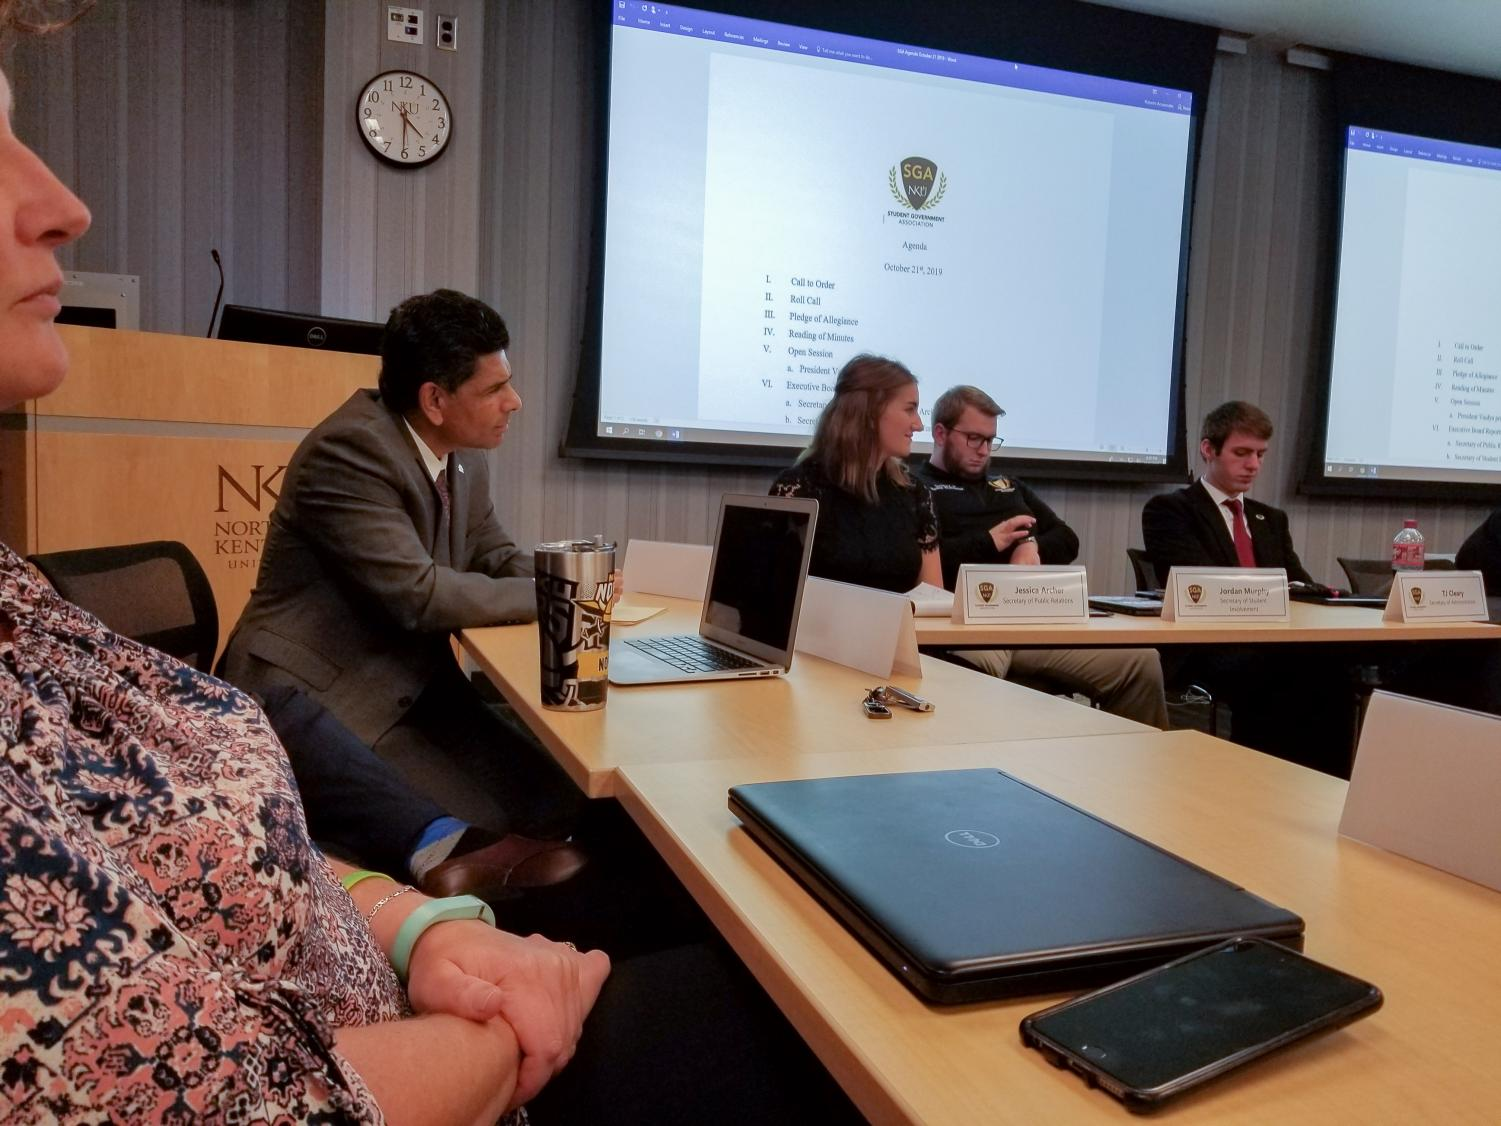 """President Vaidya attended the Oct. 21 meeting. Vaidya said, """"I do believe that great ideas can come from anywhere, as long as they keep the students front and center."""